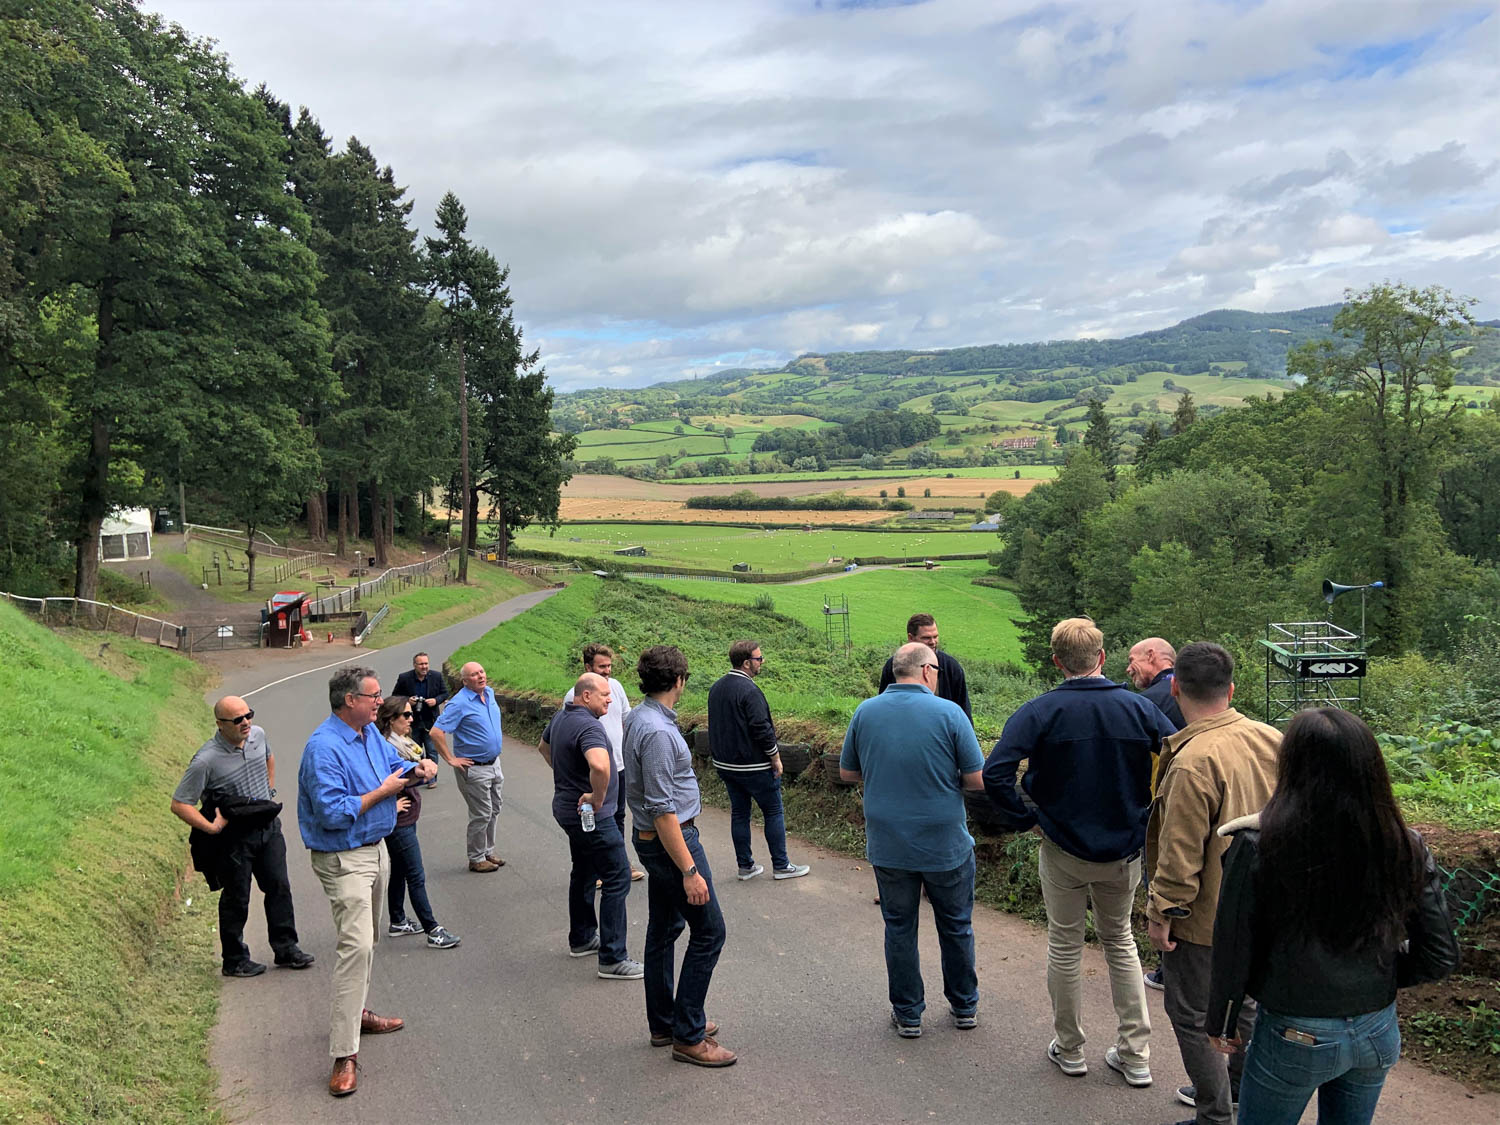 Before drivers take a crack at Shelsley Walsh, they walk the course to gain insider knowledge—and admire the stunning English countryside.